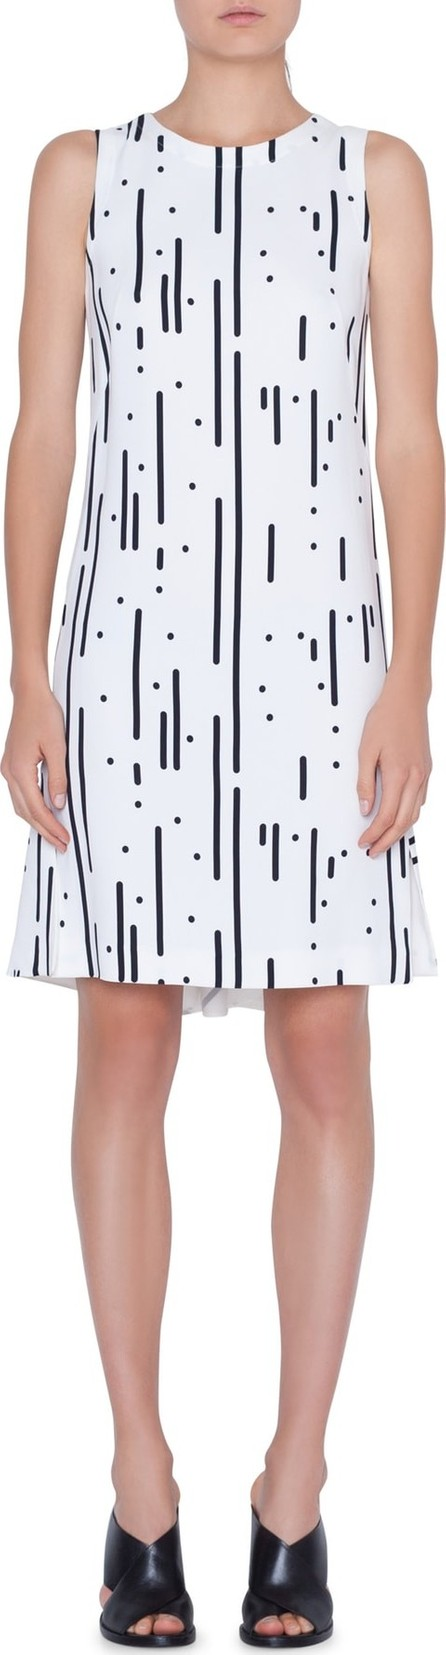 Akris Punto Lamiera Print Shift Dress